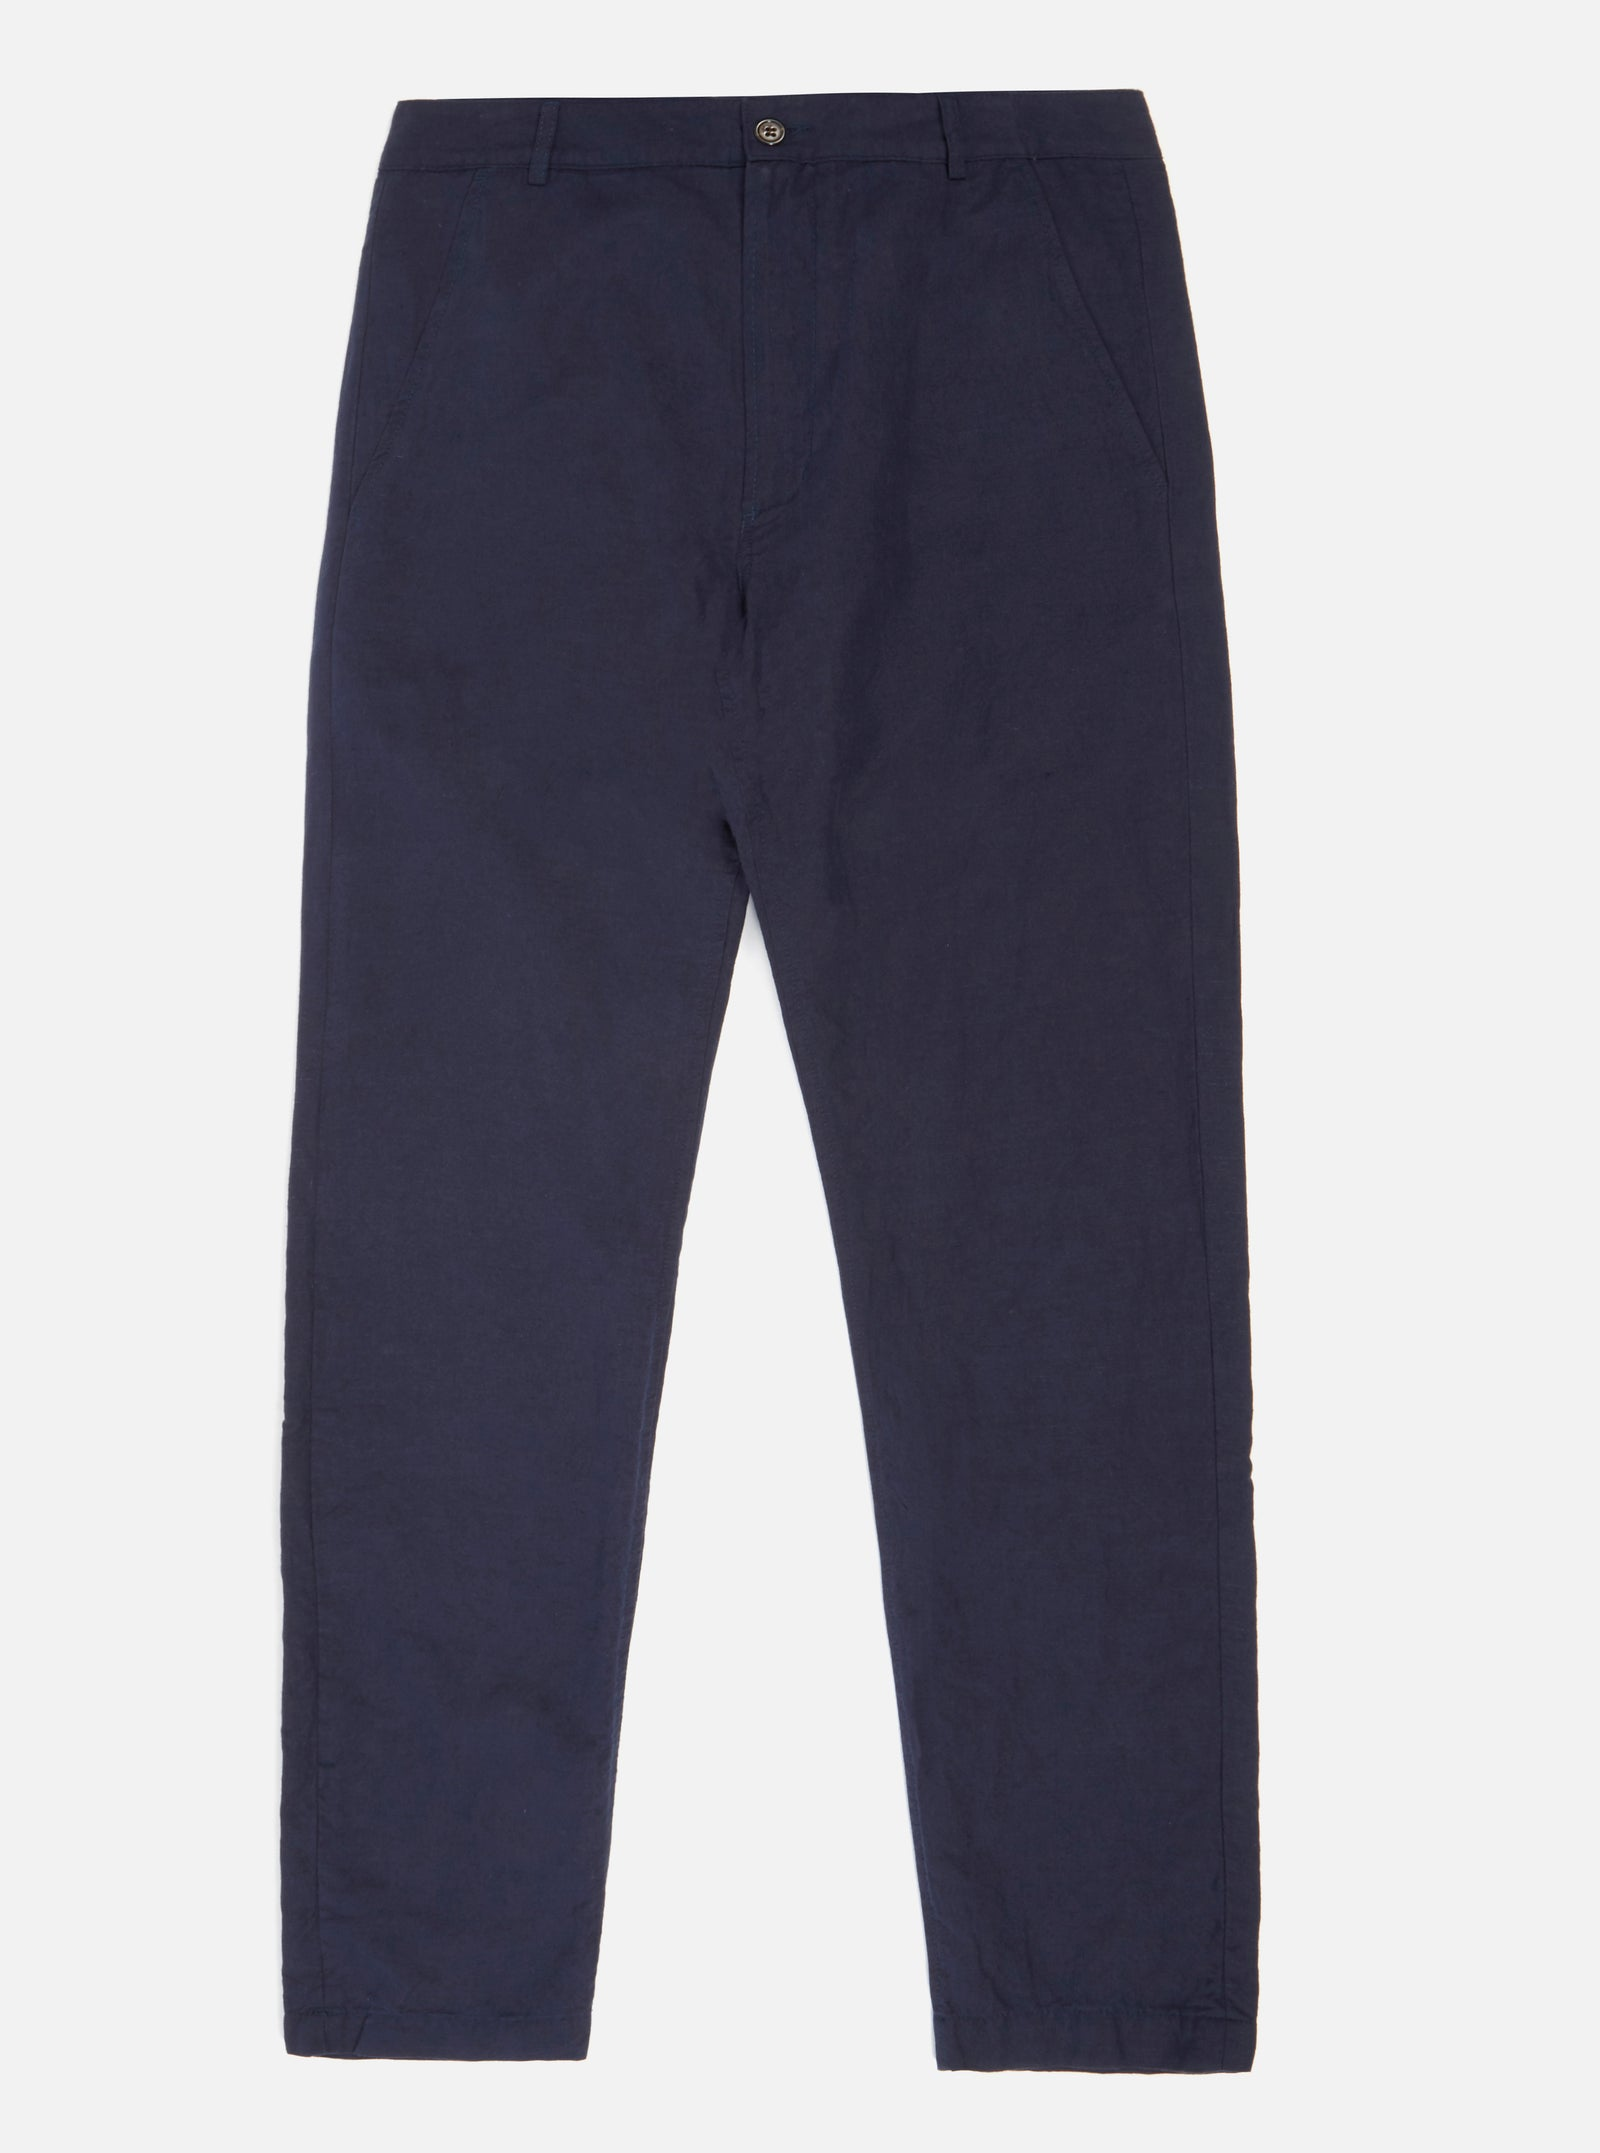 Universal Works Aston Pant in Navy Cotton Linen